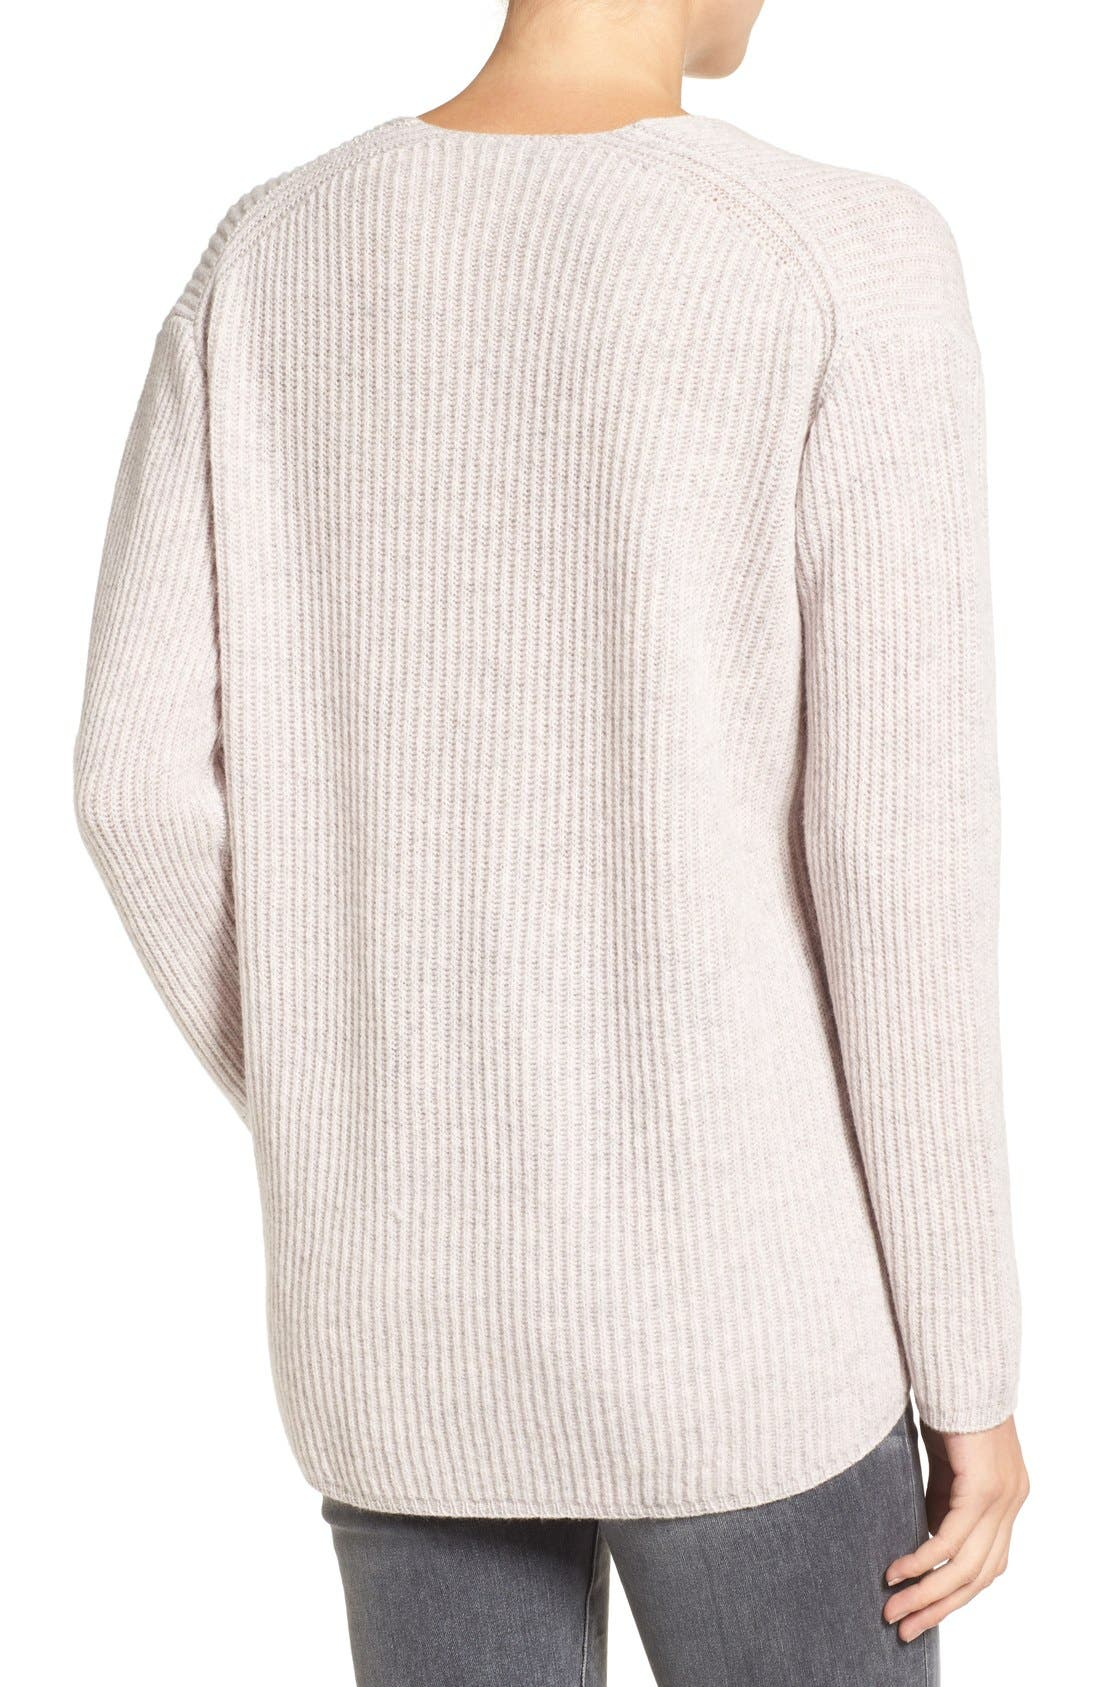 Woodside Pullover Sweater,                             Alternate thumbnail 13, color,